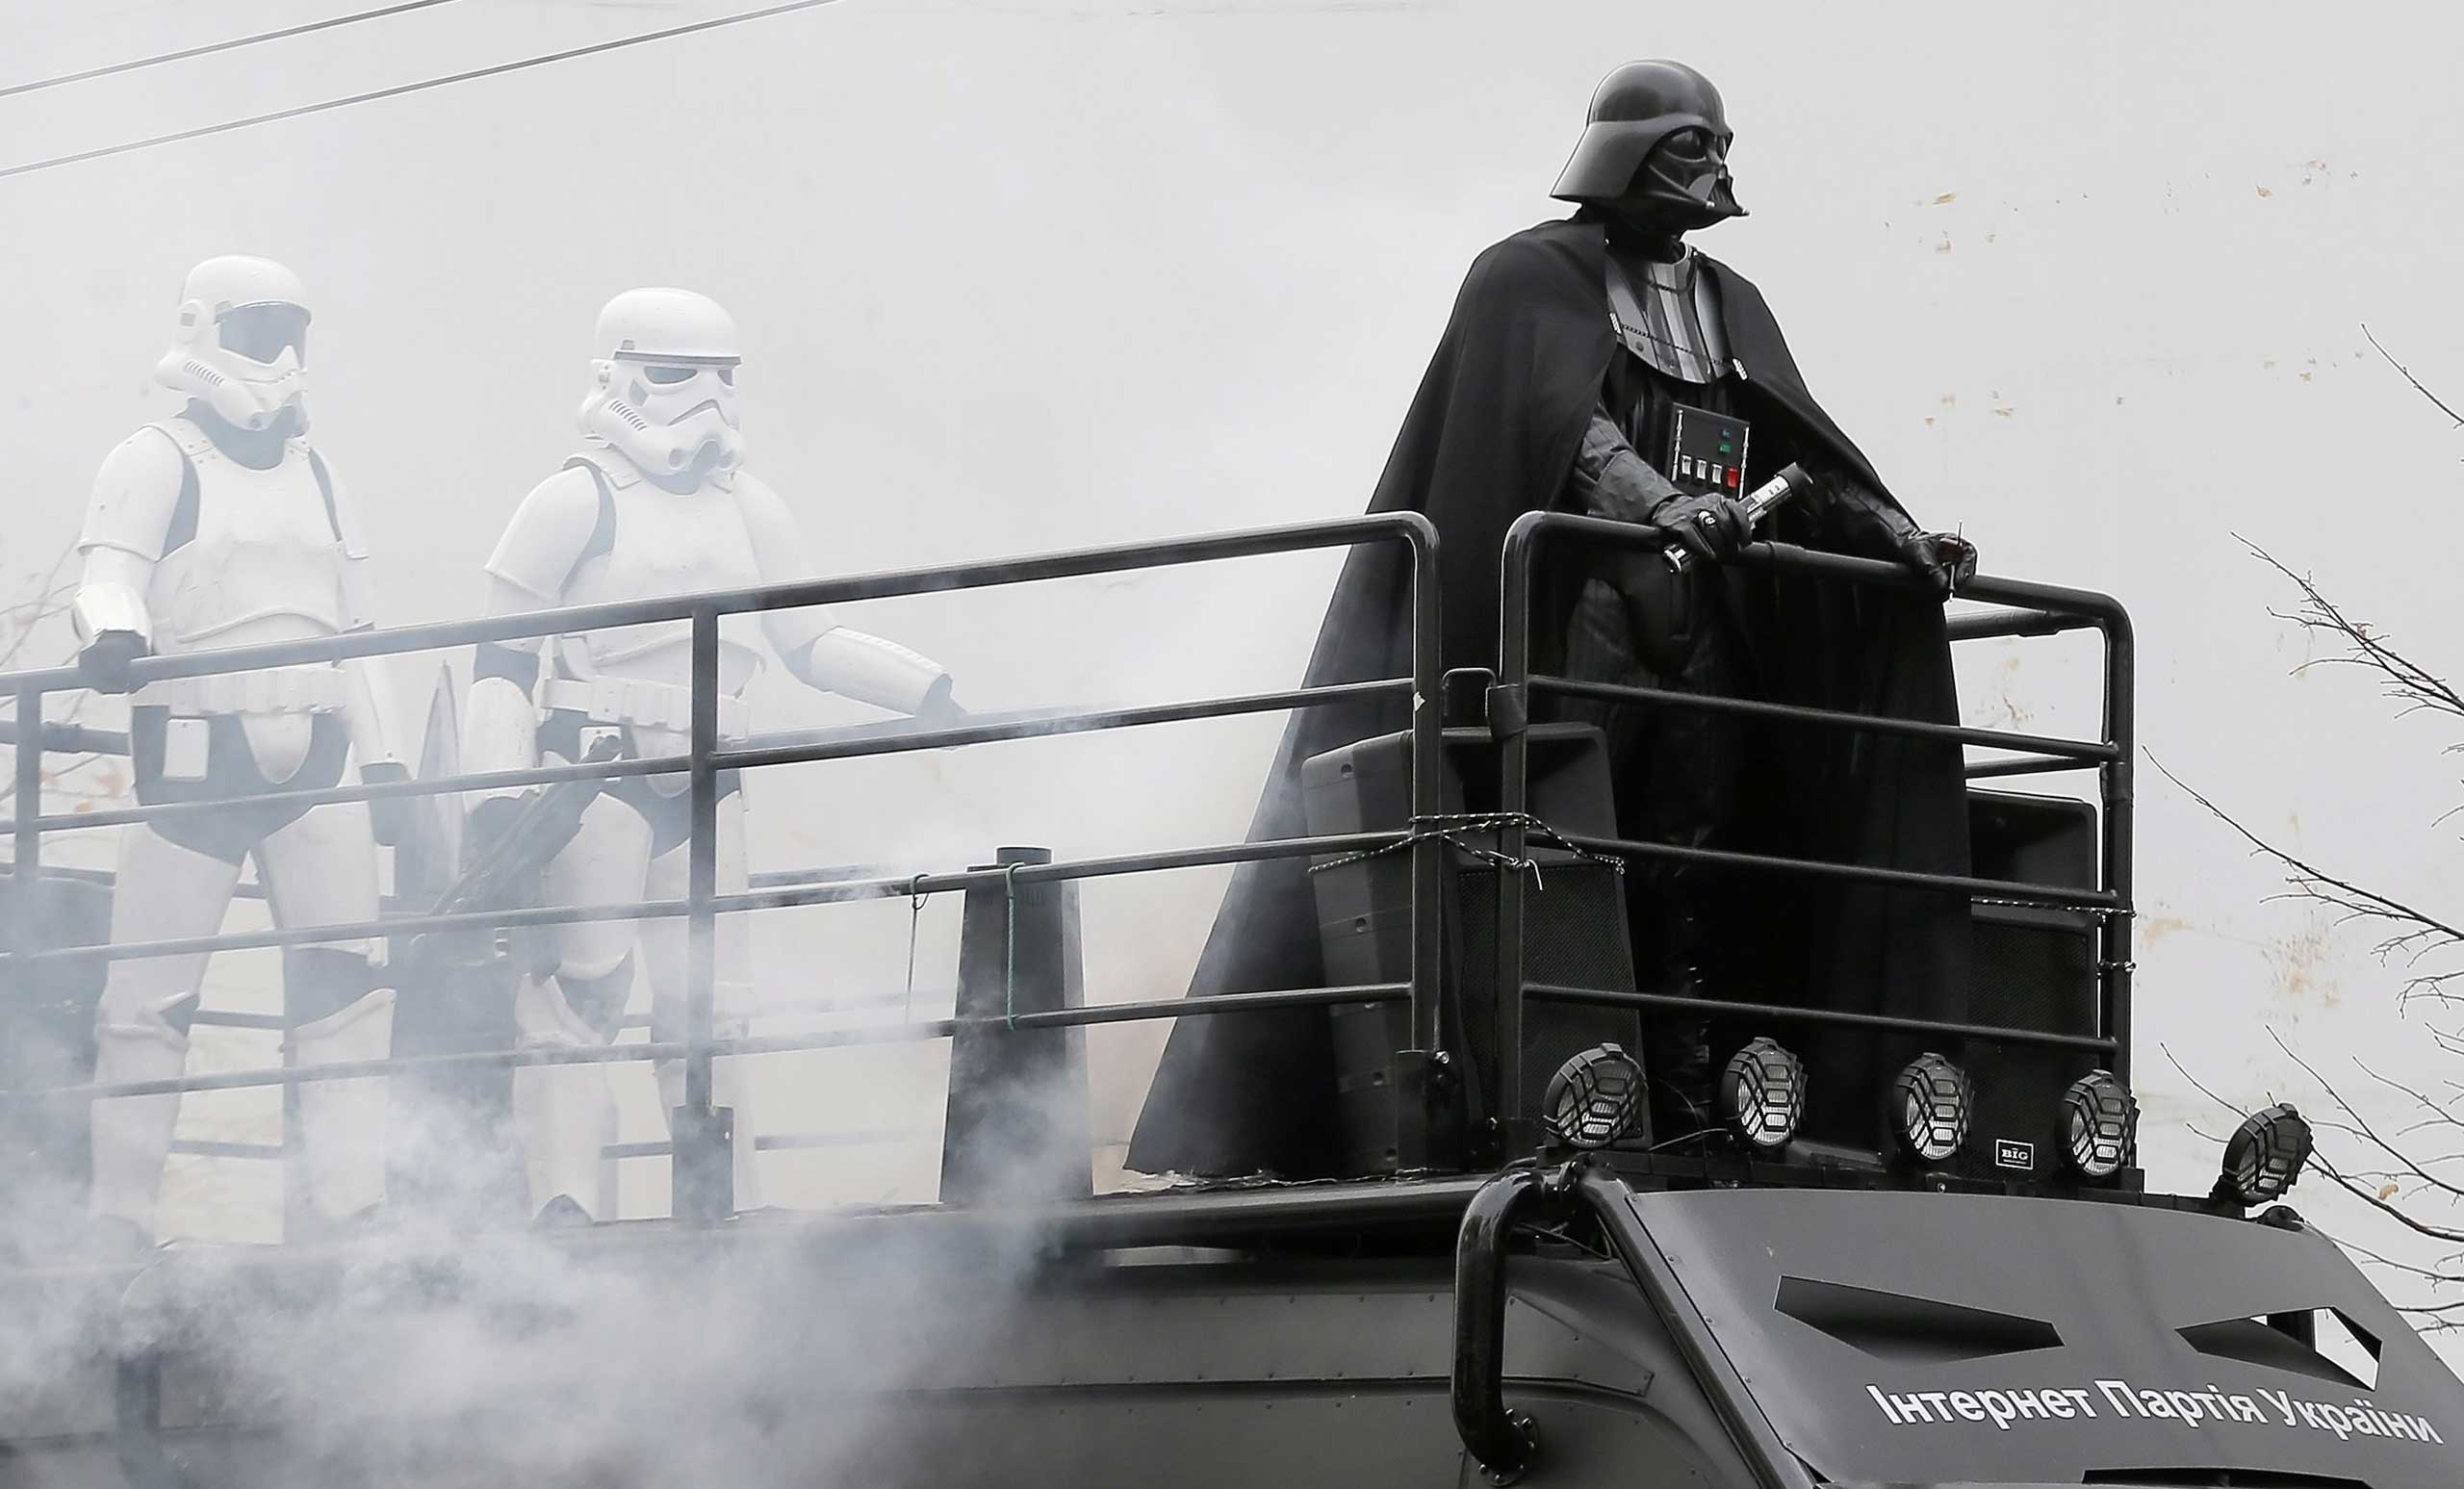 An impersonator of Star Wars character 'Darth Vader' stands on the roof of a van during an election campaign event for the Ukrainian Internet Party. Party members  have legally changed their names to  resemble 'Star Wars'  characters. Kiev,  Oct. 21, 2014.